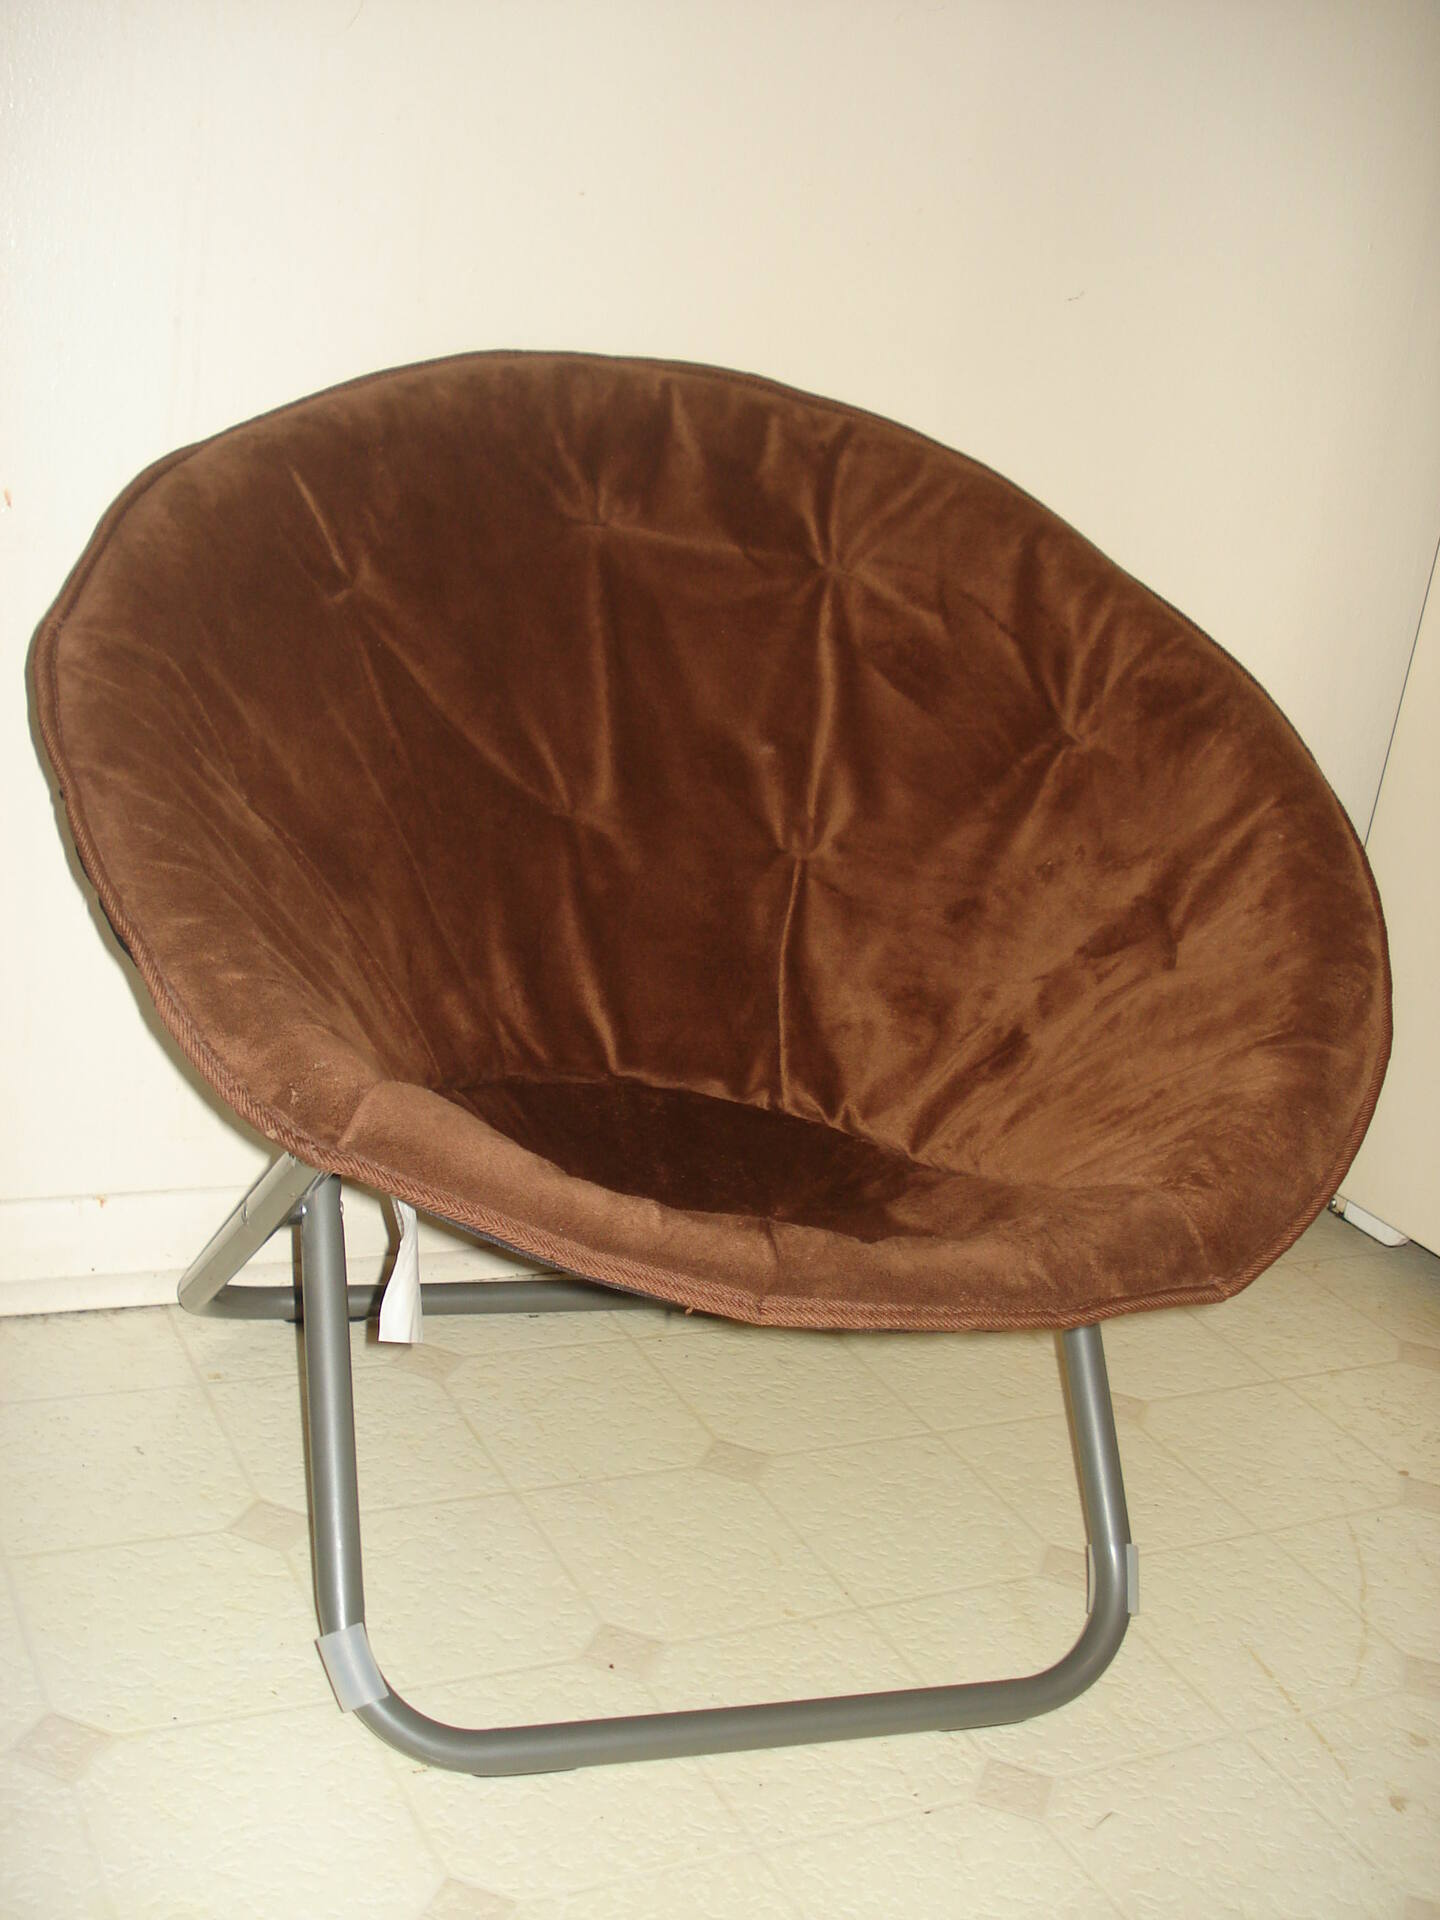 what is a papasan chair room and board dining chairs also called moon bigfootglobal